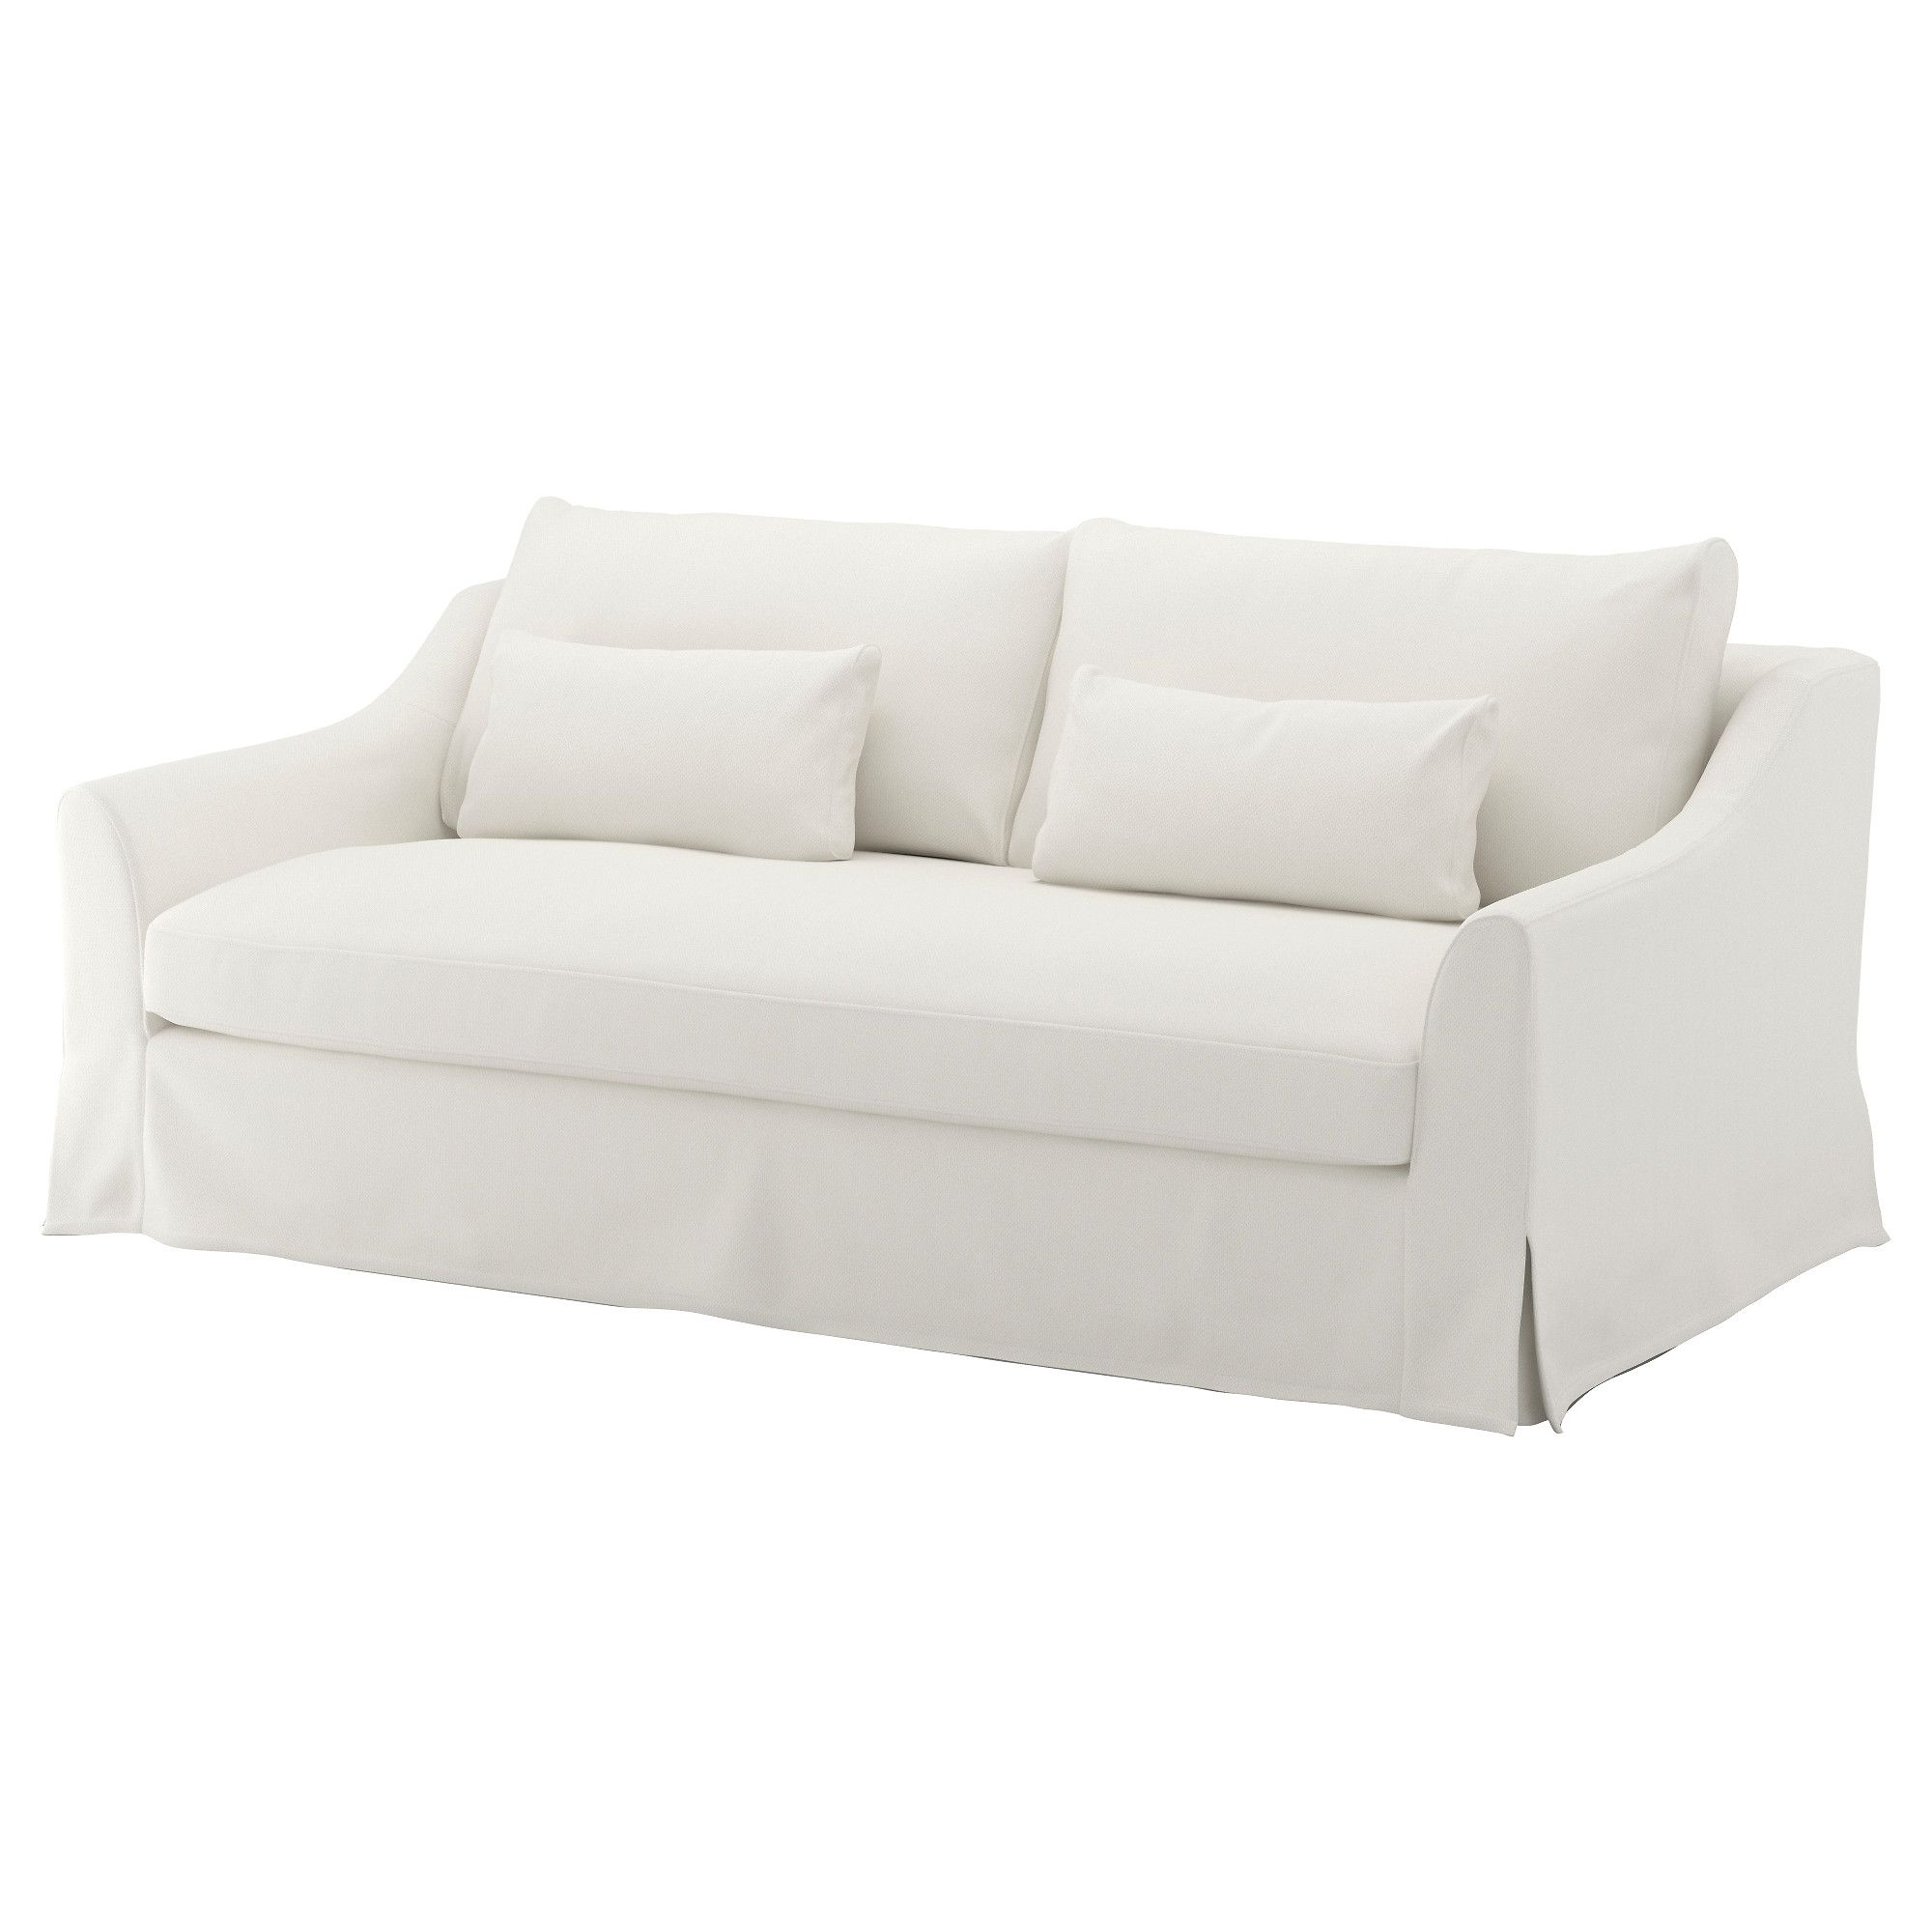 Perfect FÄRLÖV 3 Seat Sofa Flodafors White